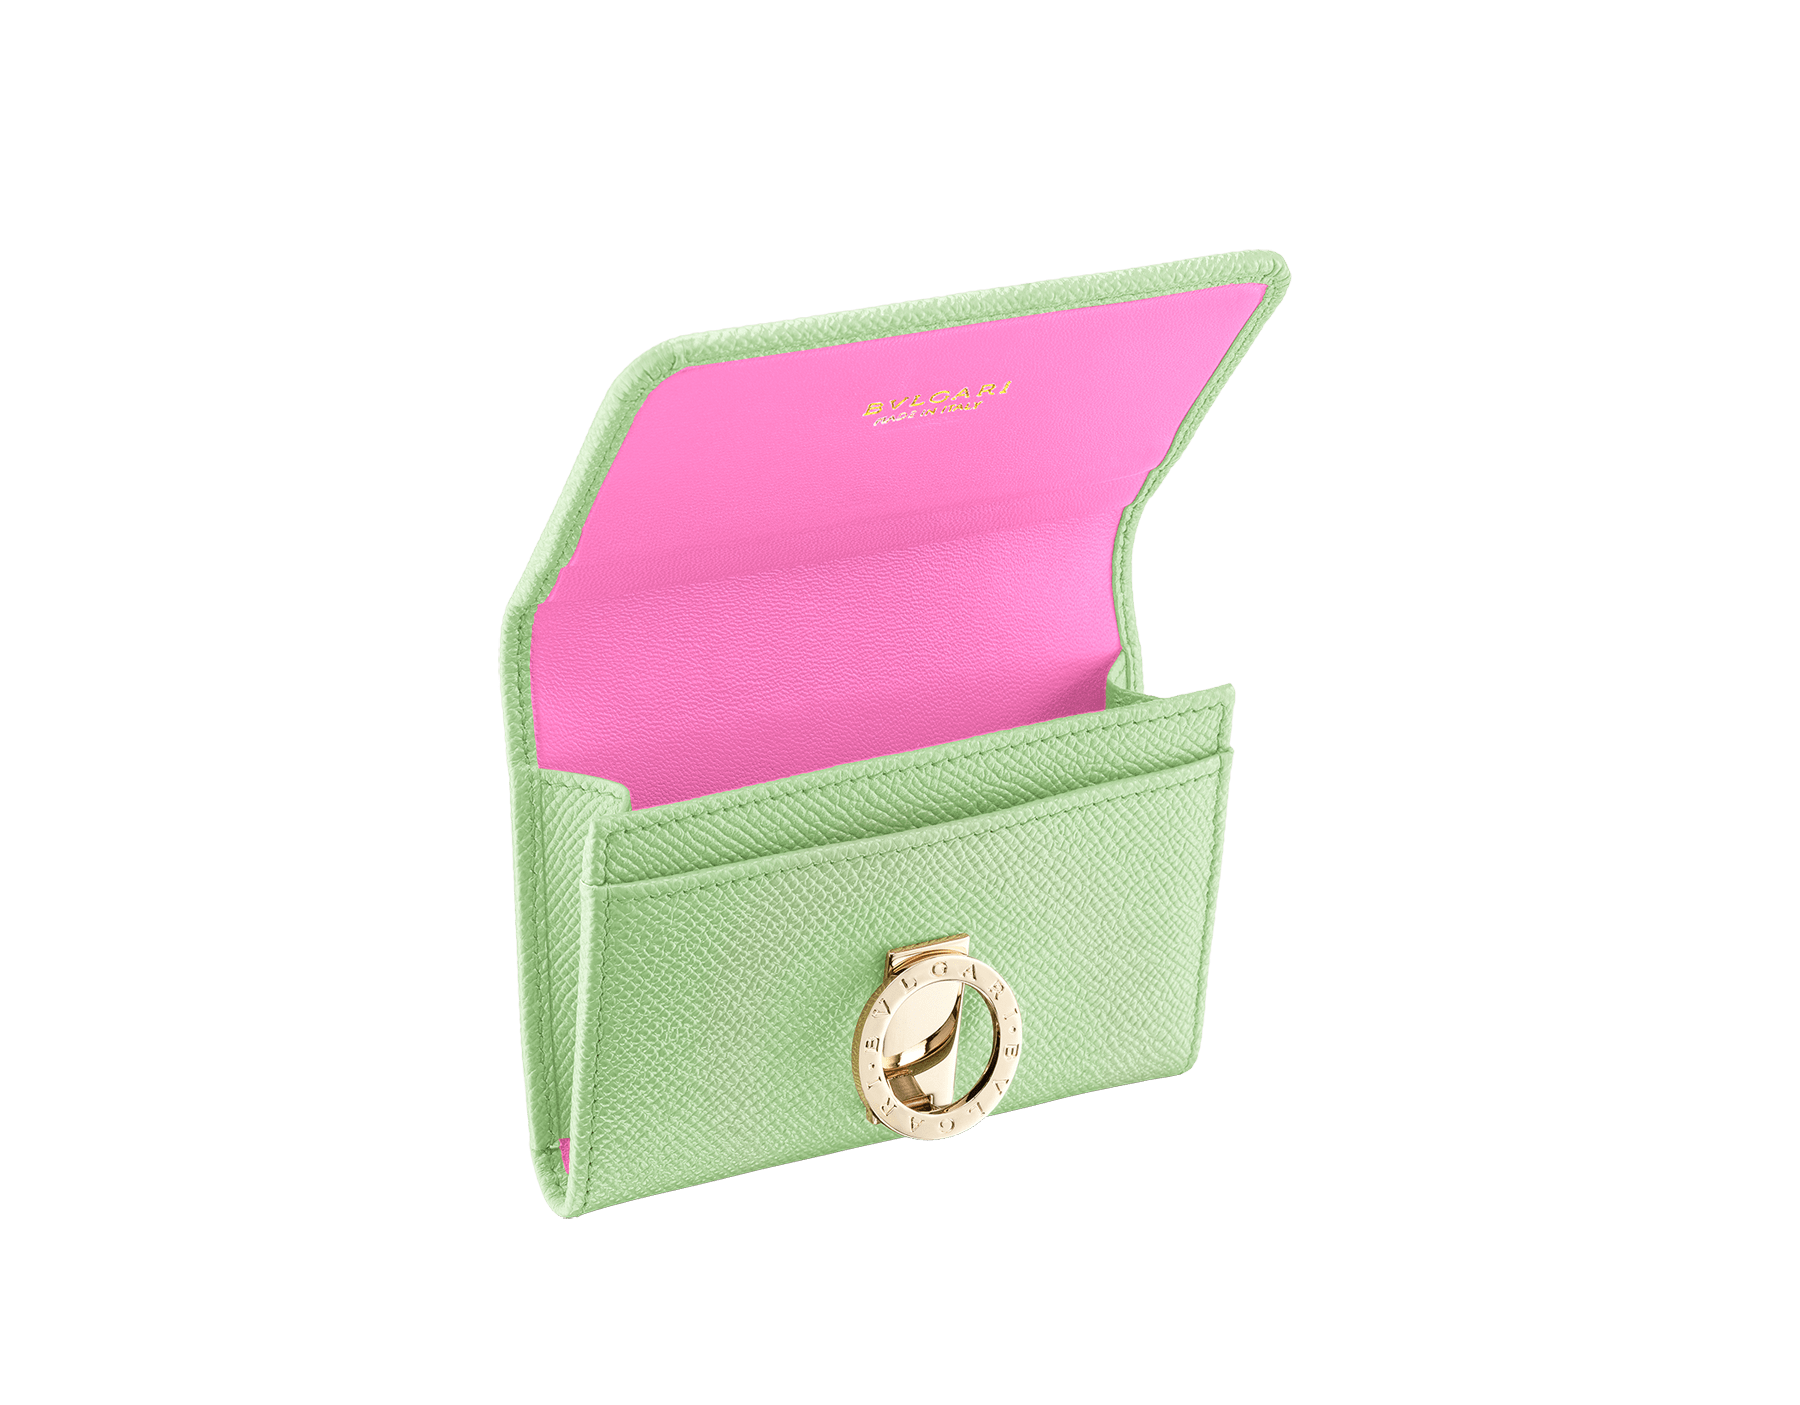 """""""BVLGARI BVLGARI"""" business card holder in mint bright grain calf leather and taffy quartz nappa leather. Iconic logo clip closure in light gold plated brass. 289748 image 2"""